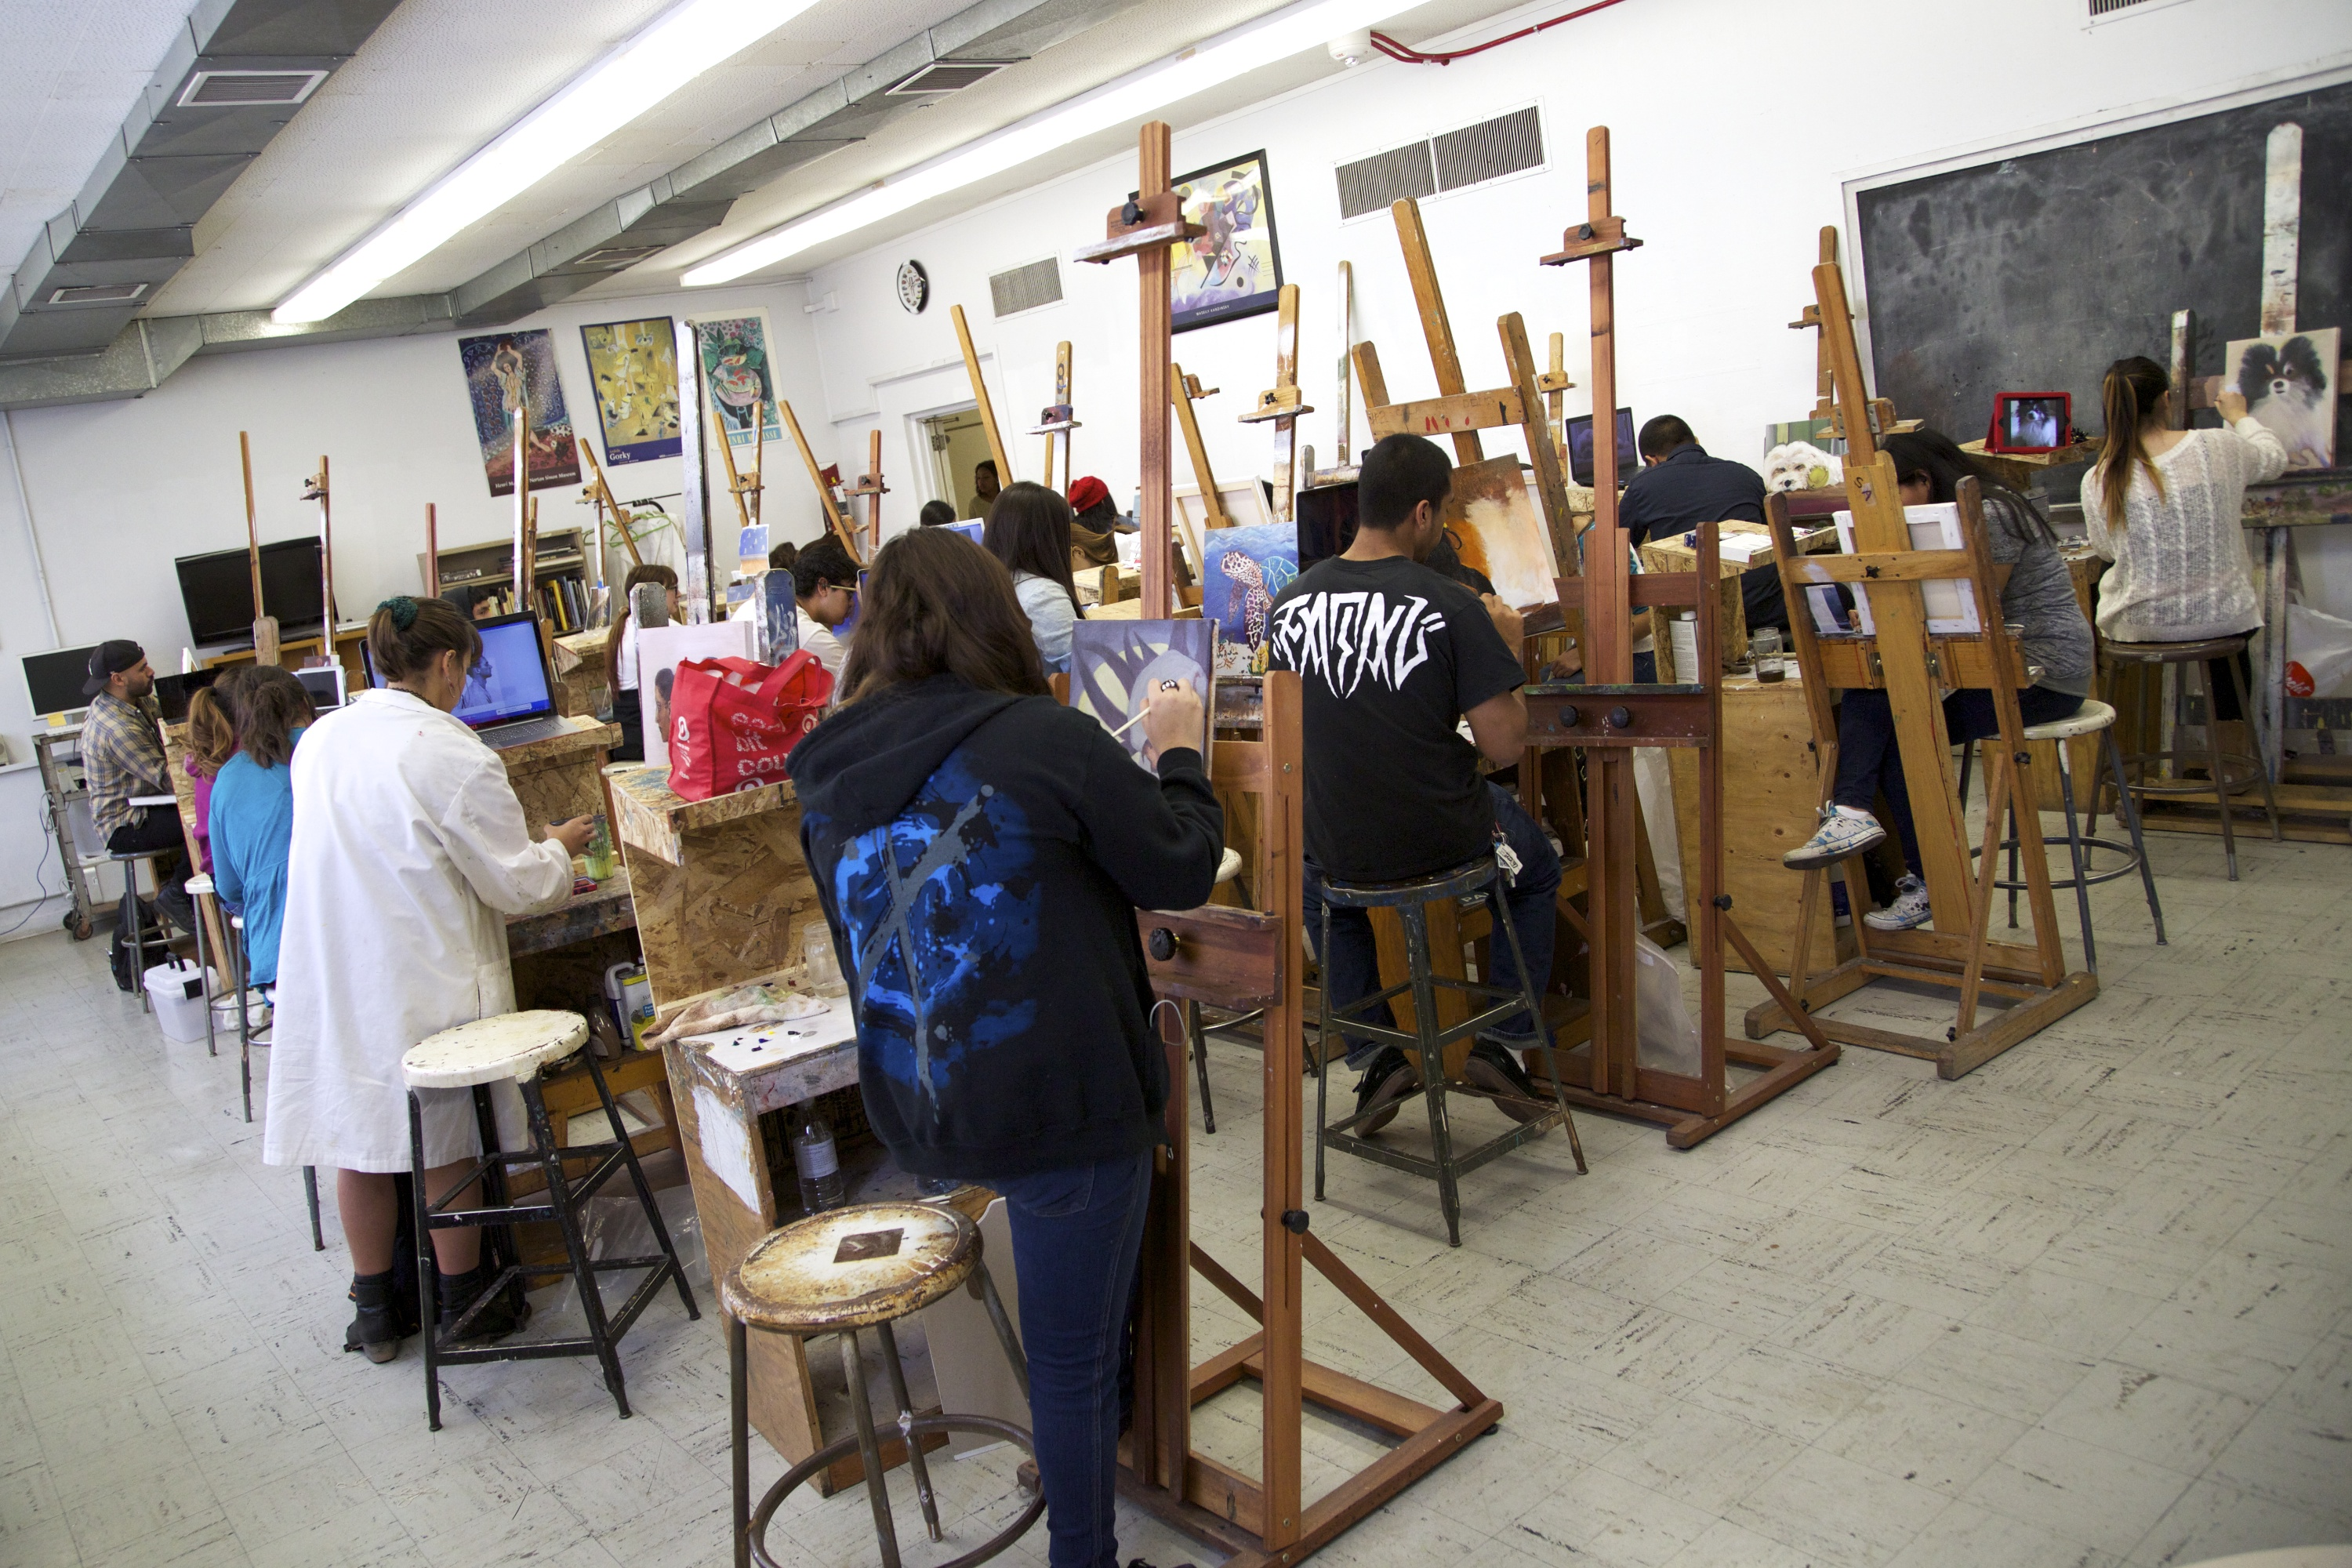 Painting Studio, students are working on their paintings.